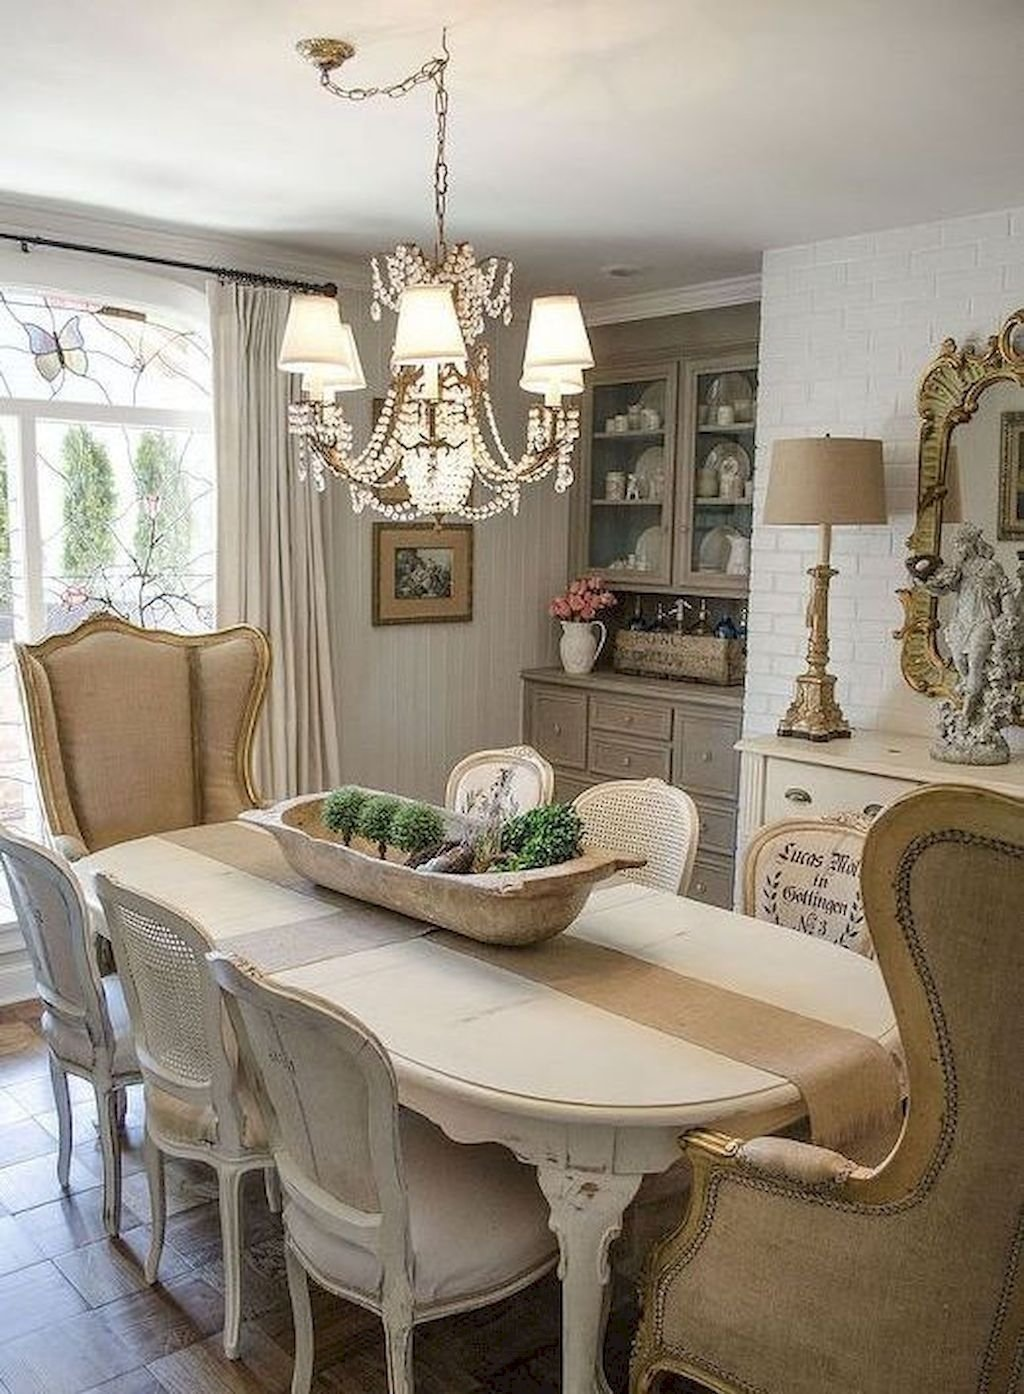 10 Perfect French Country Dining Room Ideas 60 lasting french country dining room decor ideas french country 2021